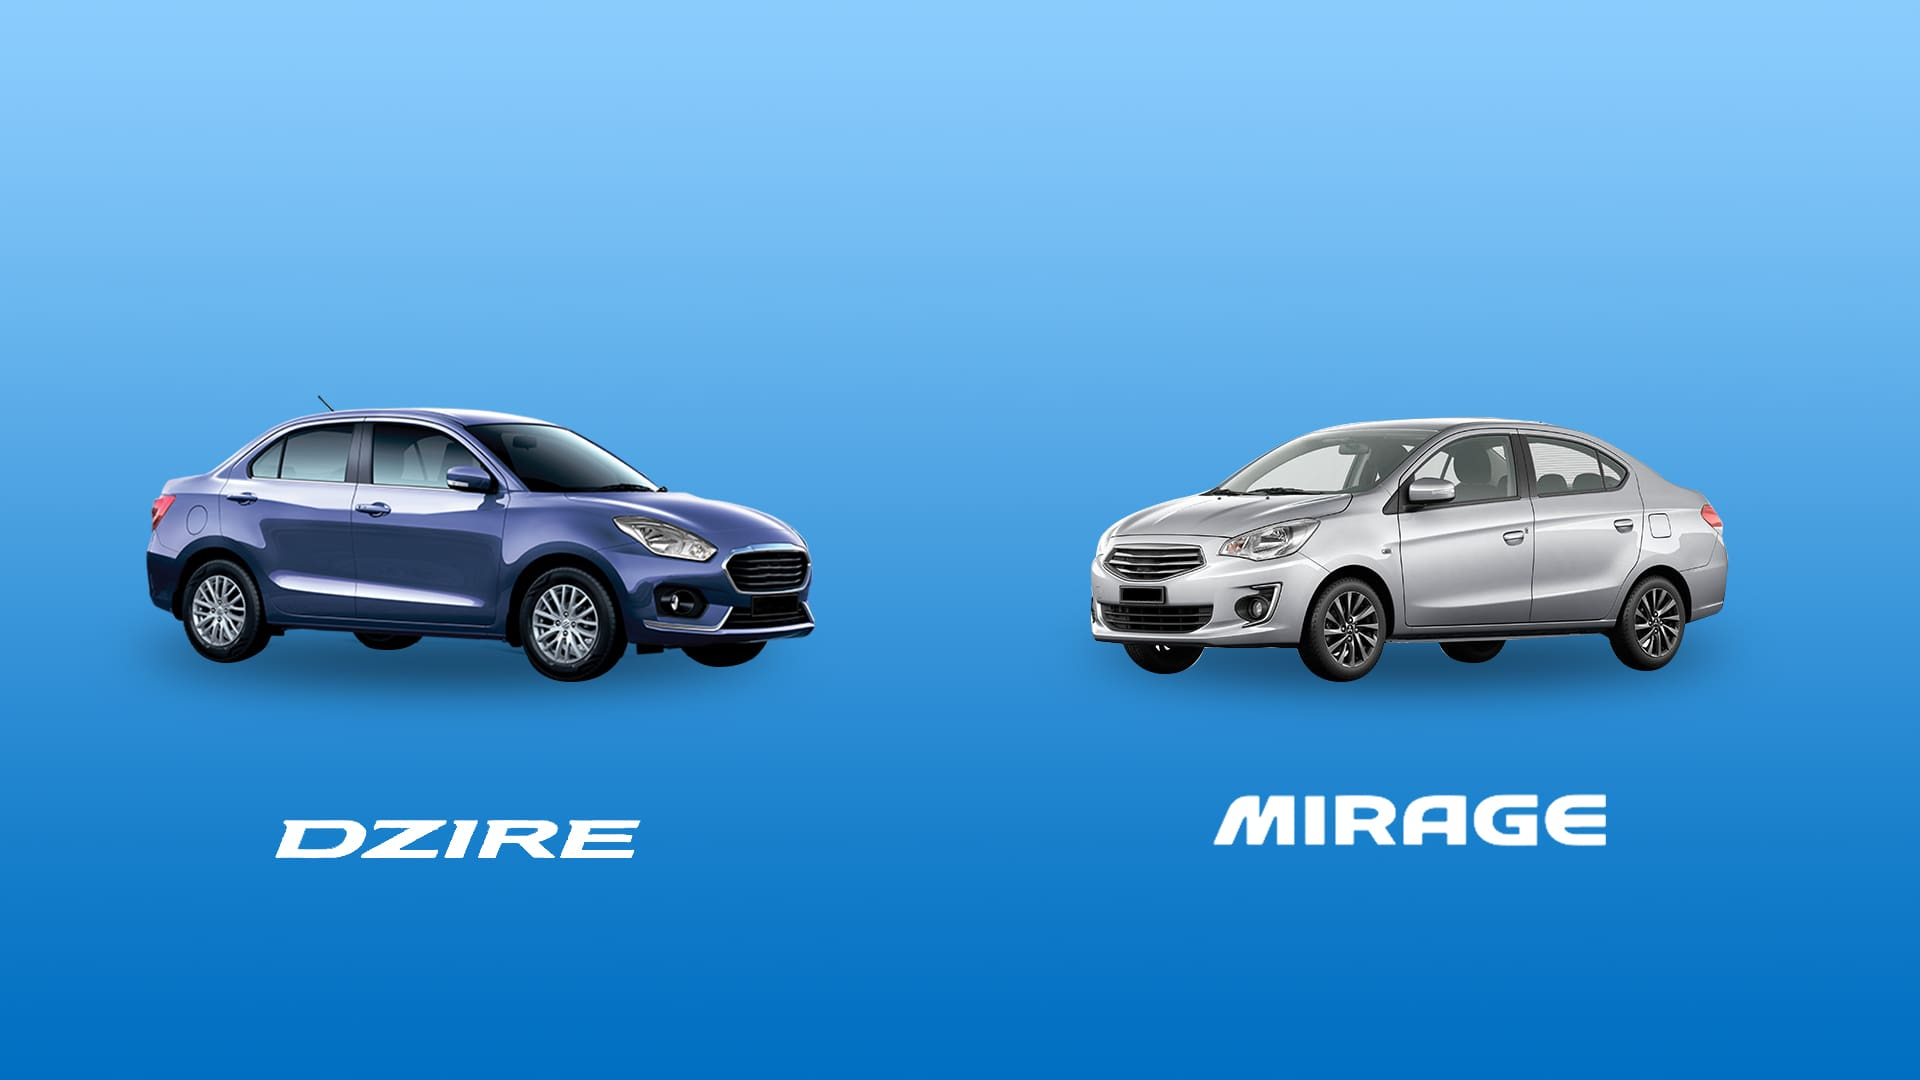 CAR COMPARISON: Suzuki Dzire 1.2 GL+ vs. Mitsubishi Mirage G4 1.2 GLS